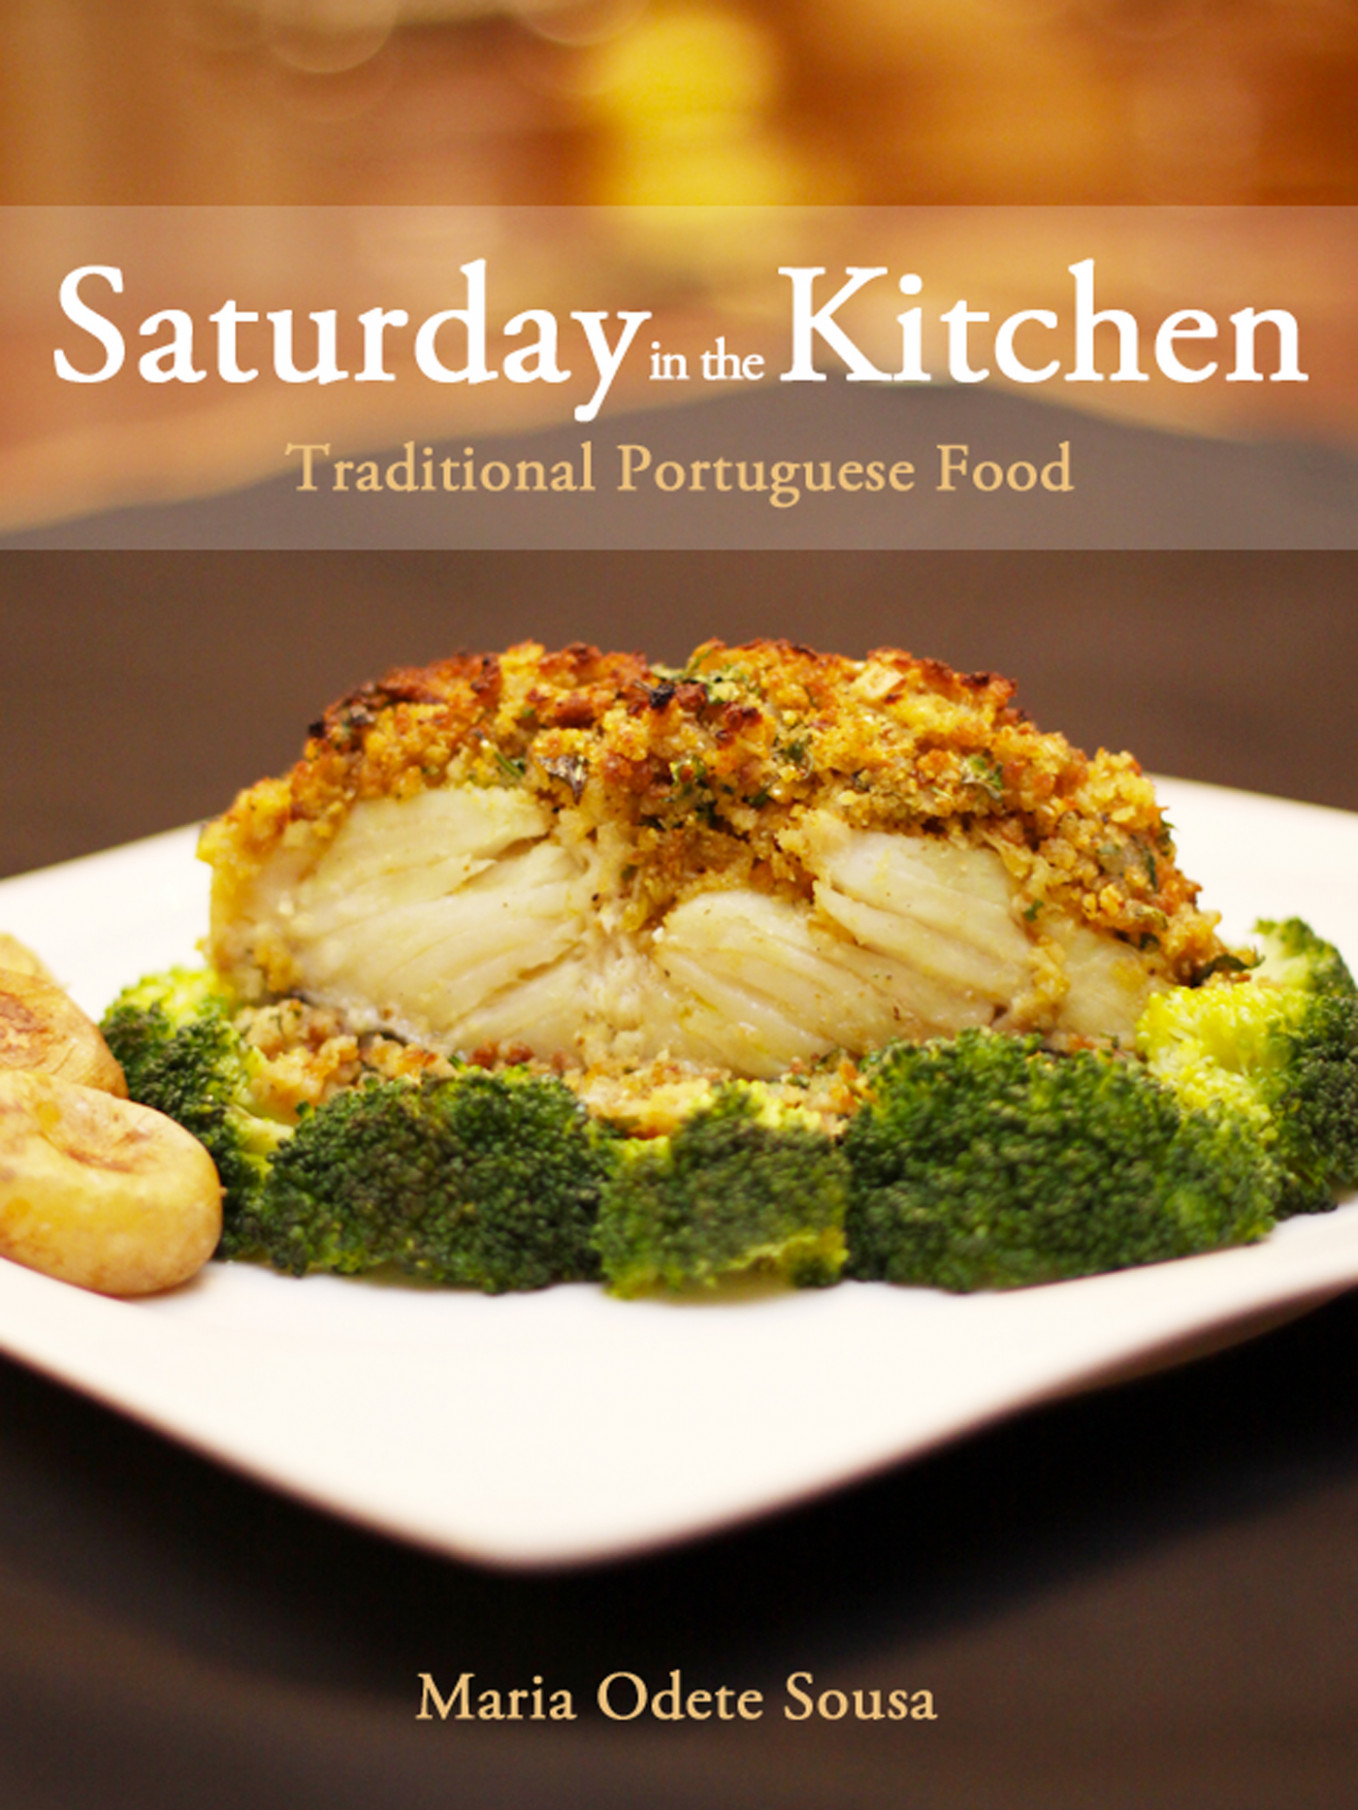 Saturday in the Kitchen: Traditional Portuguese Food, an Ebook by Maria  Odete Sousa - portuguese food recipes